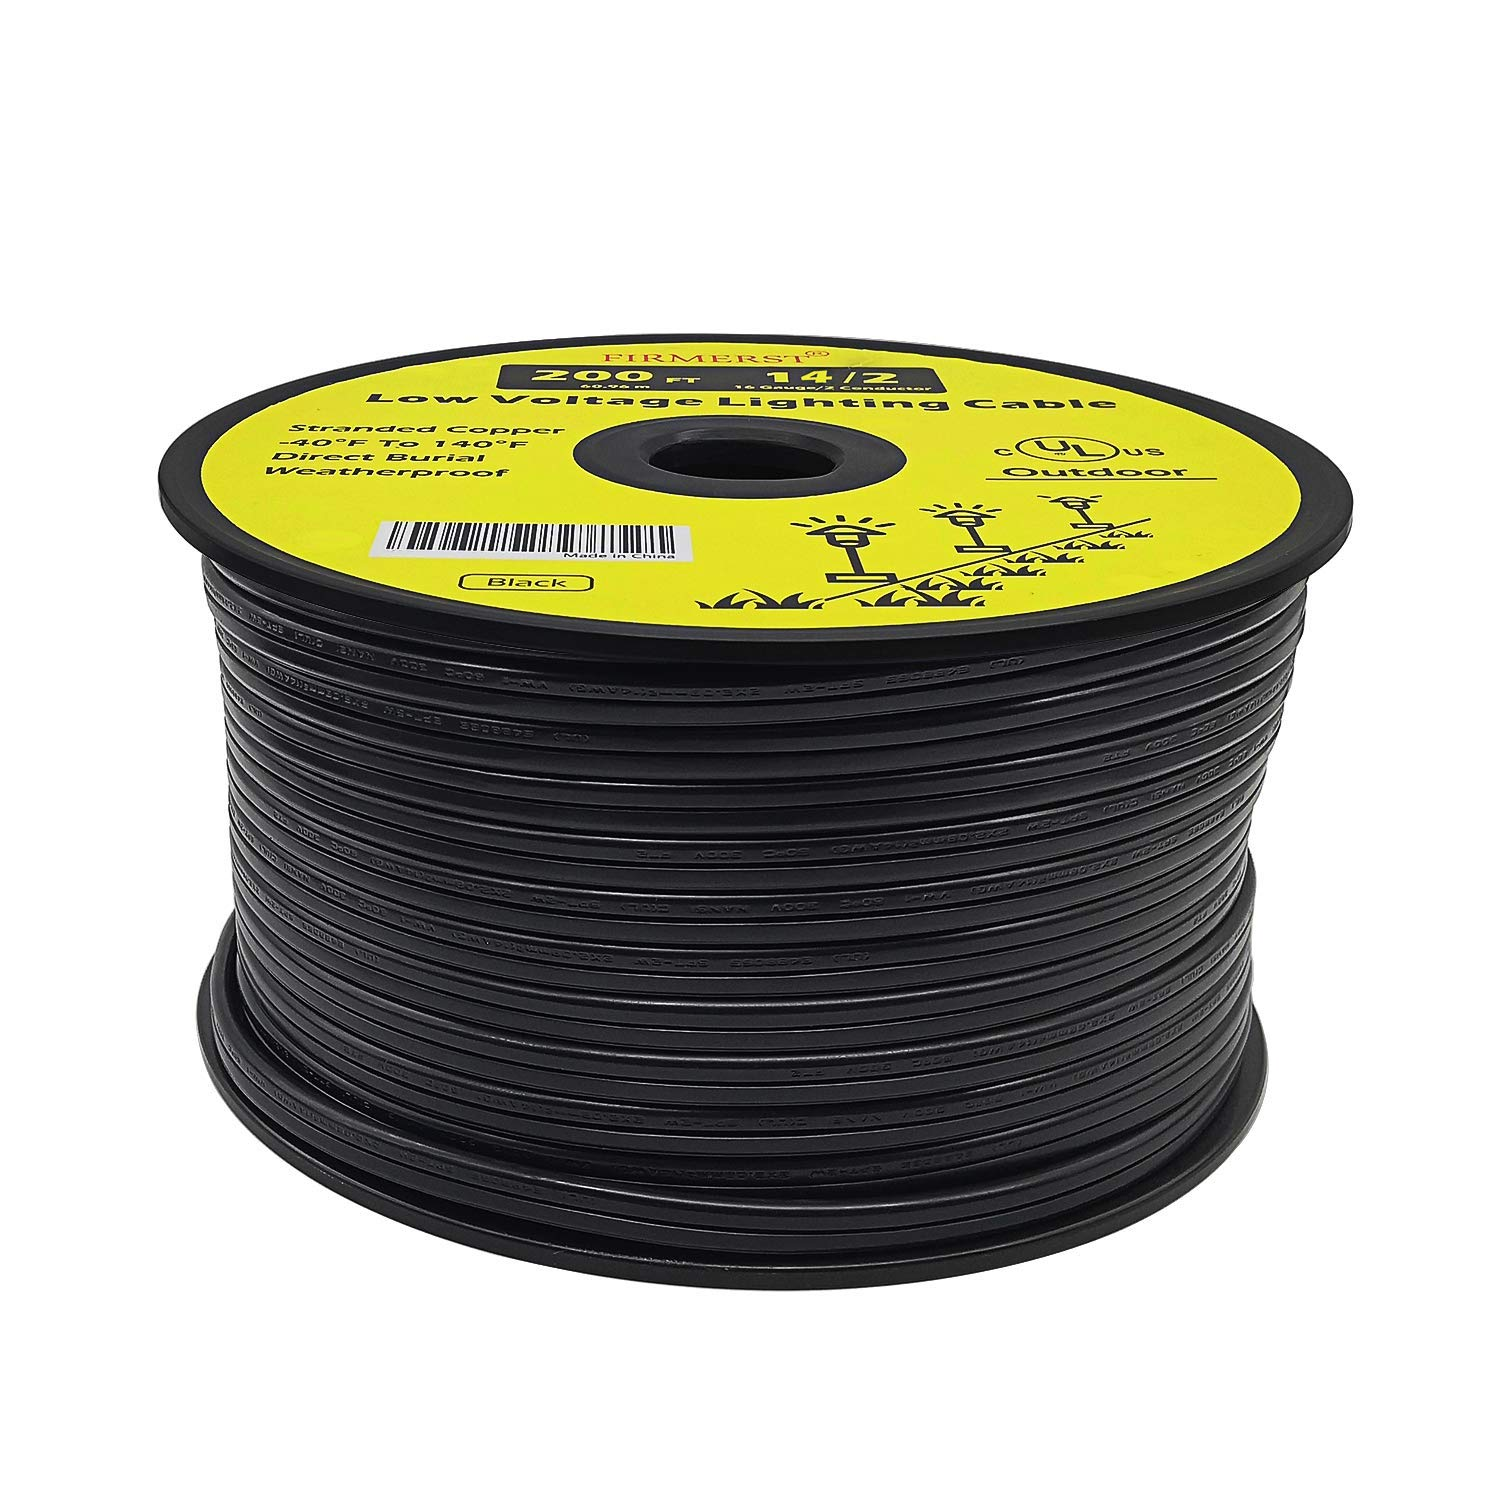 FIRMERST 14/2 Low Voltage Landscape Wire Outdoor Lighting Cable UL Listed 200 Feet